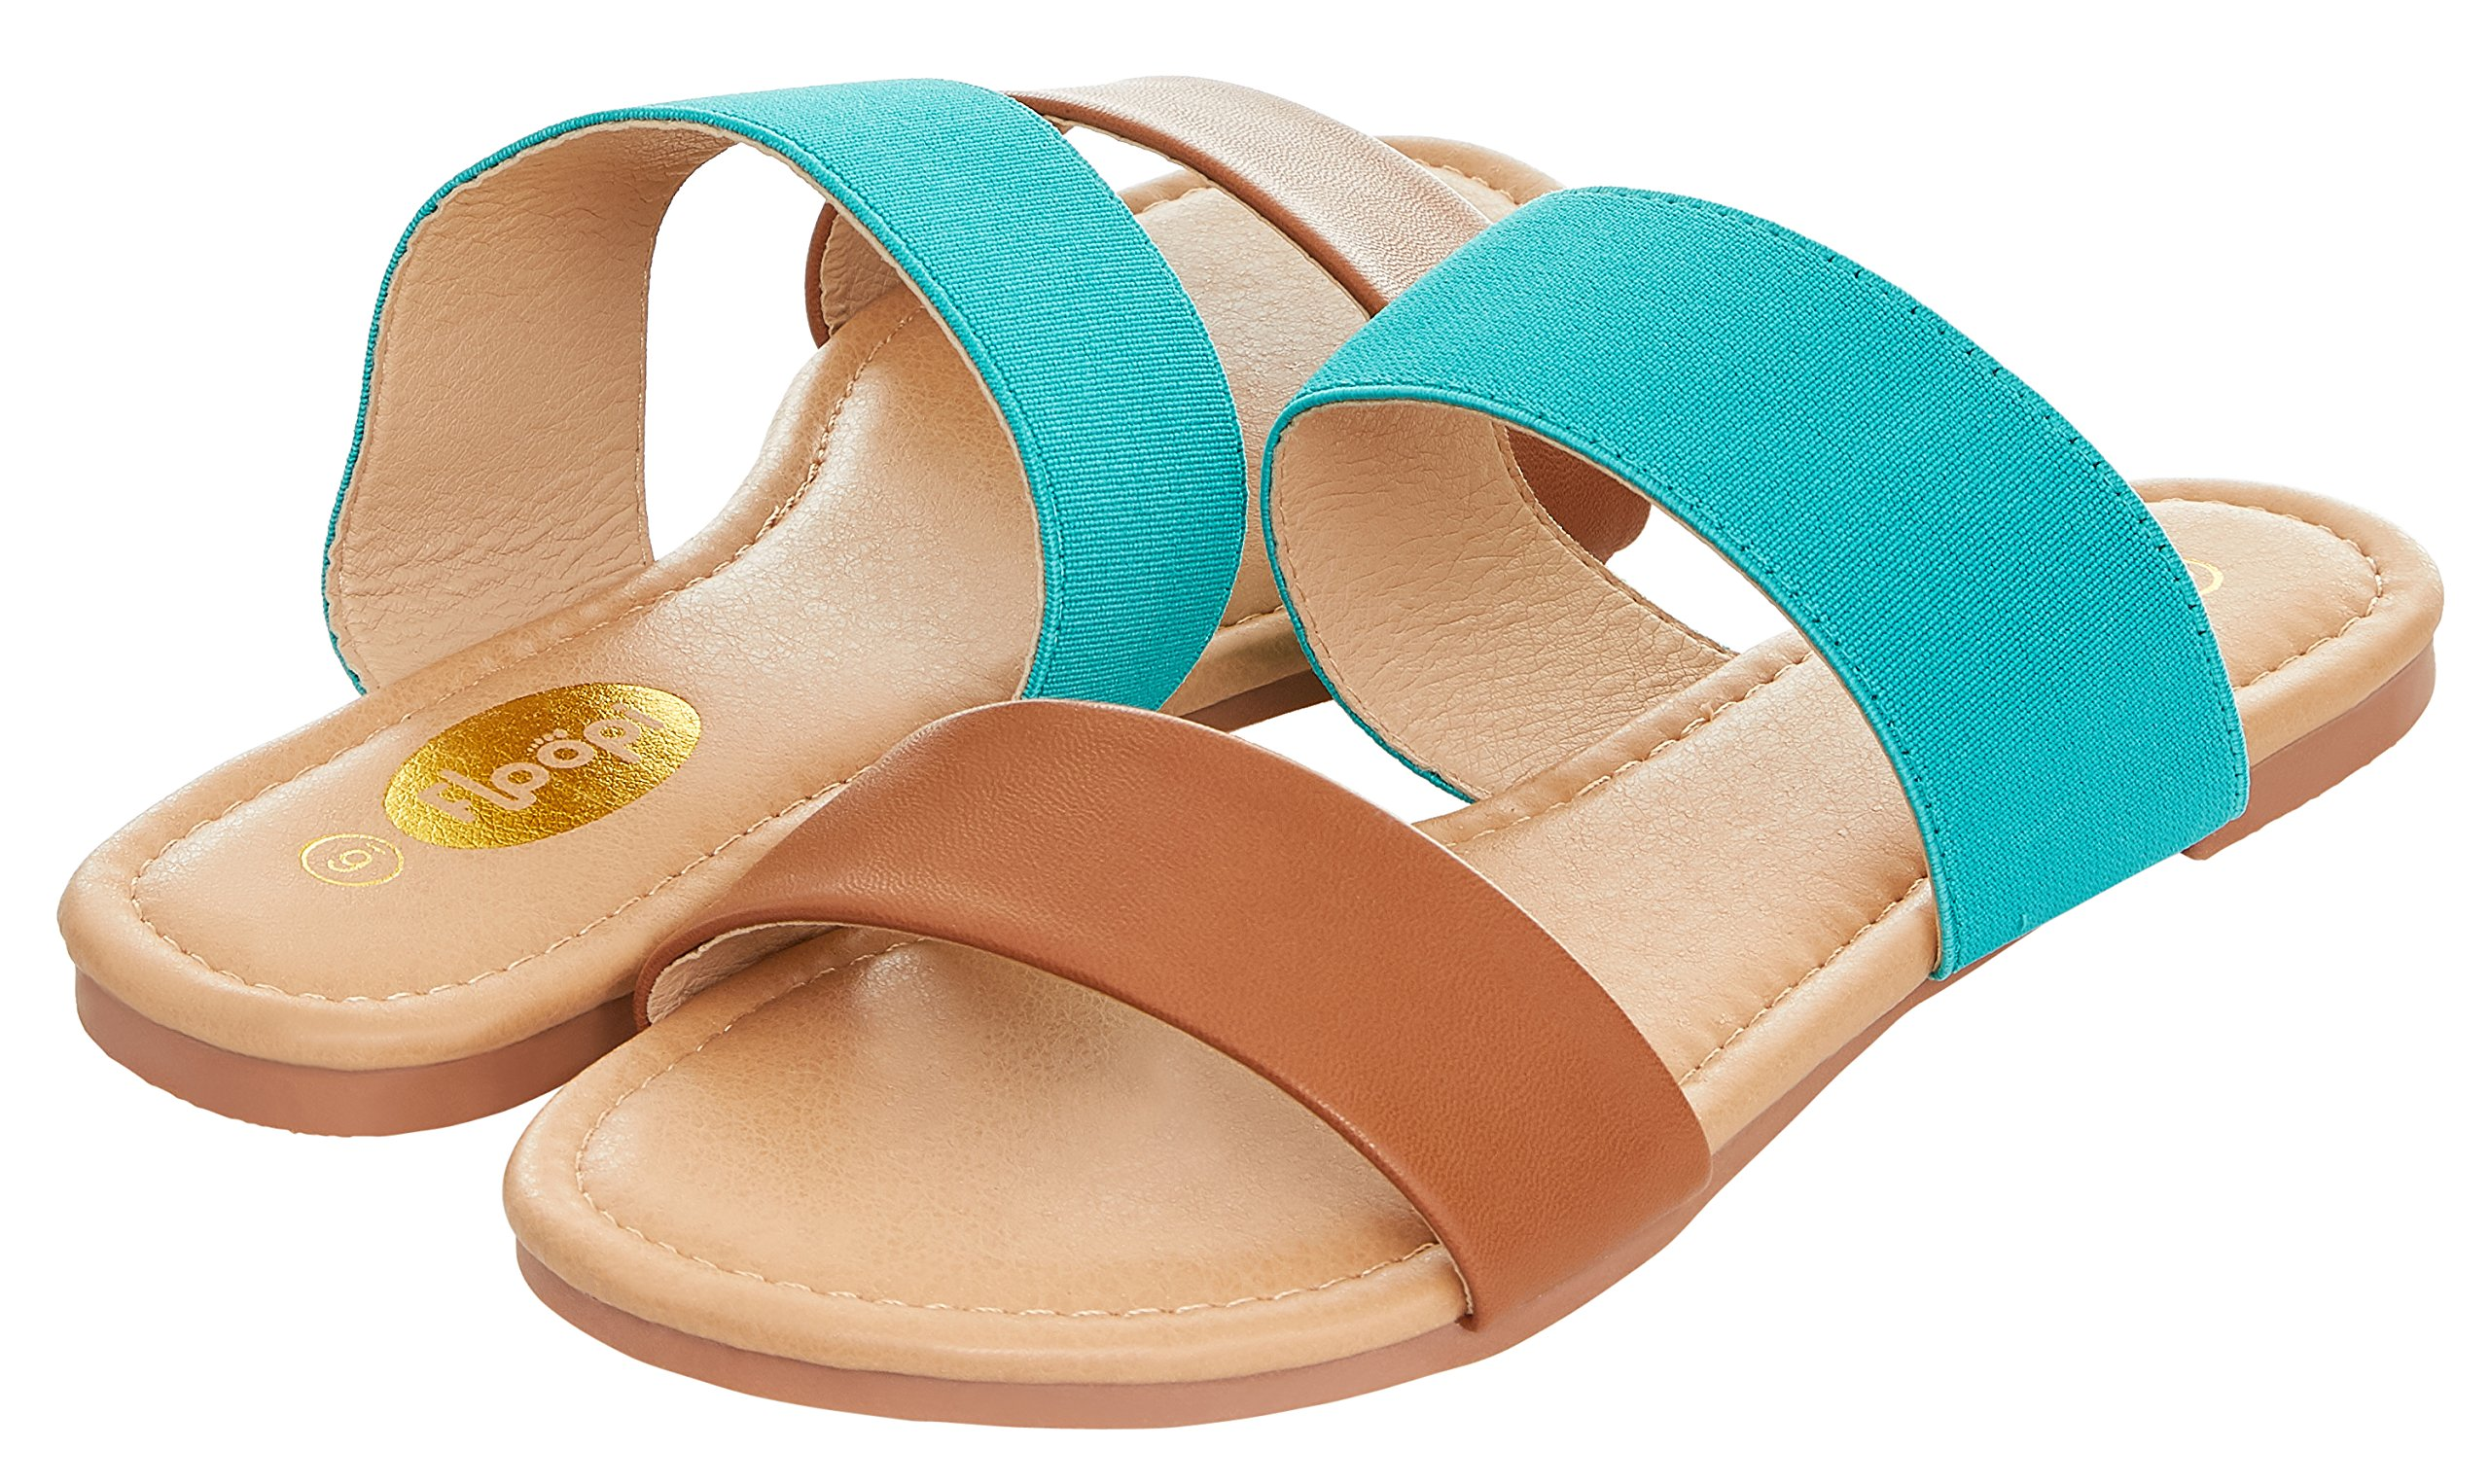 Floopi Womens Summer Wide Elastic Slide Flat Sandal (7, Tan/Teal-503)